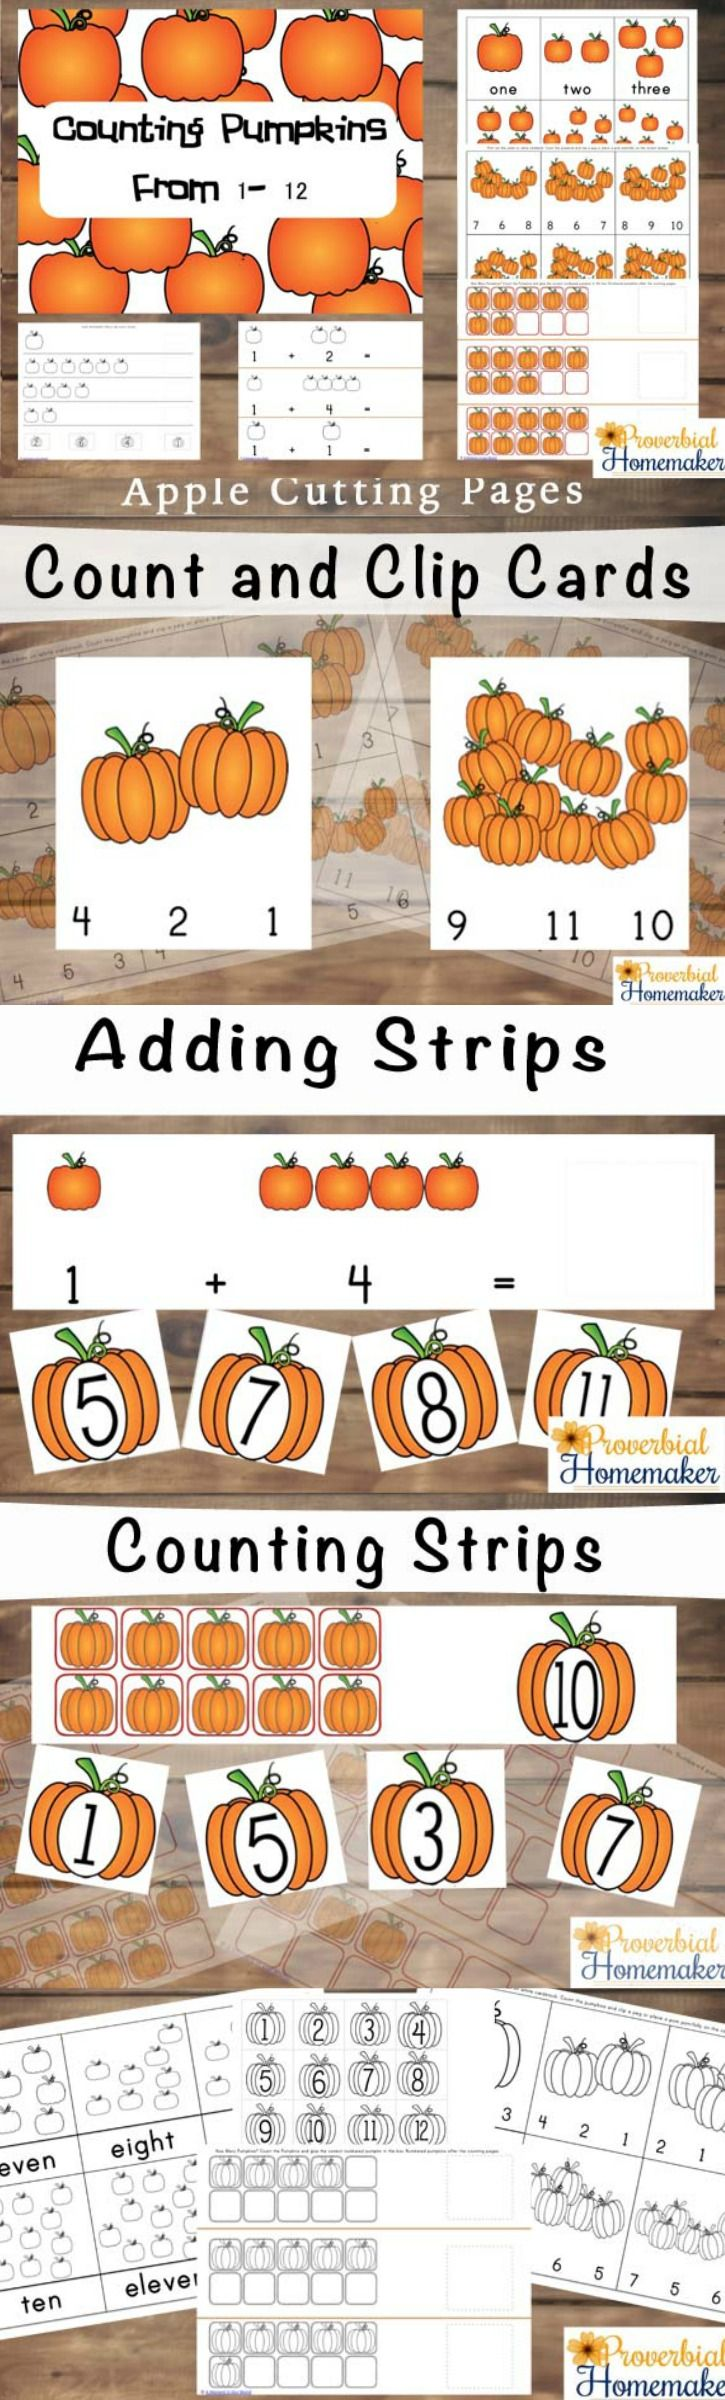 Fun! Pre-k through first grade kids will get a kick out of the pumpkins and they're educational, too! Counting Pumpkins Printable Pack - great fall homeschool printable.